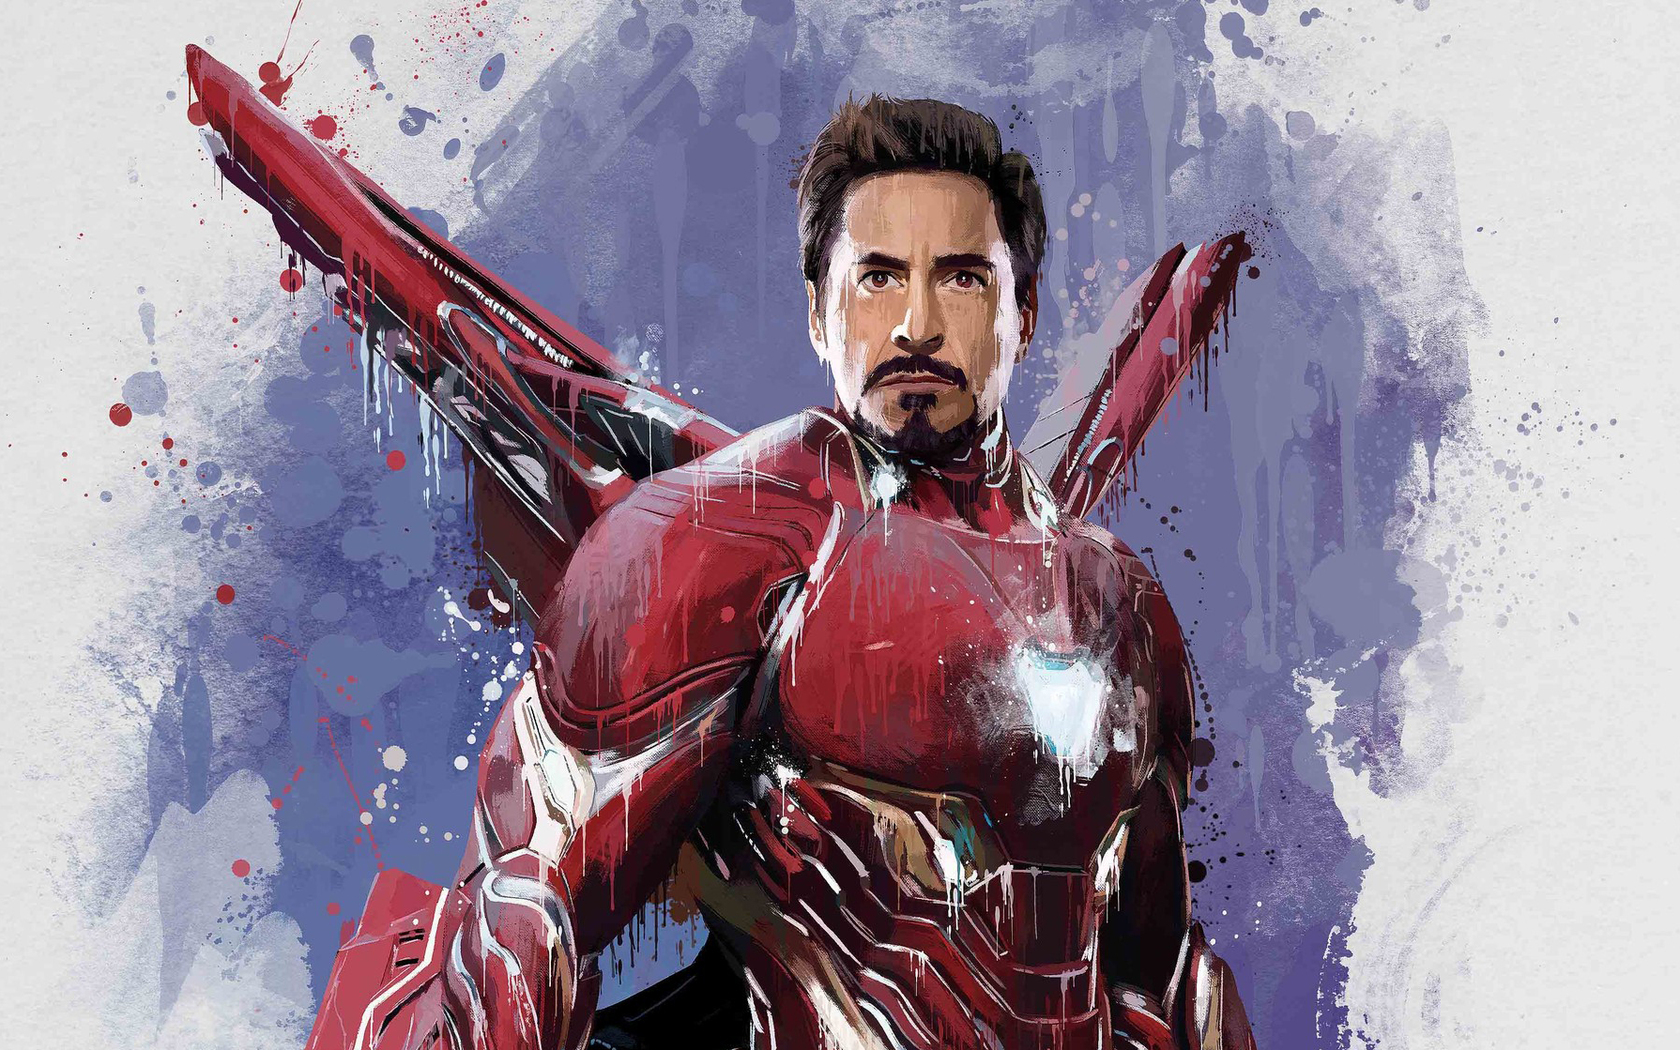 iron-man-new-suit-for-avengers-infinity-war-movie-7w.jpg